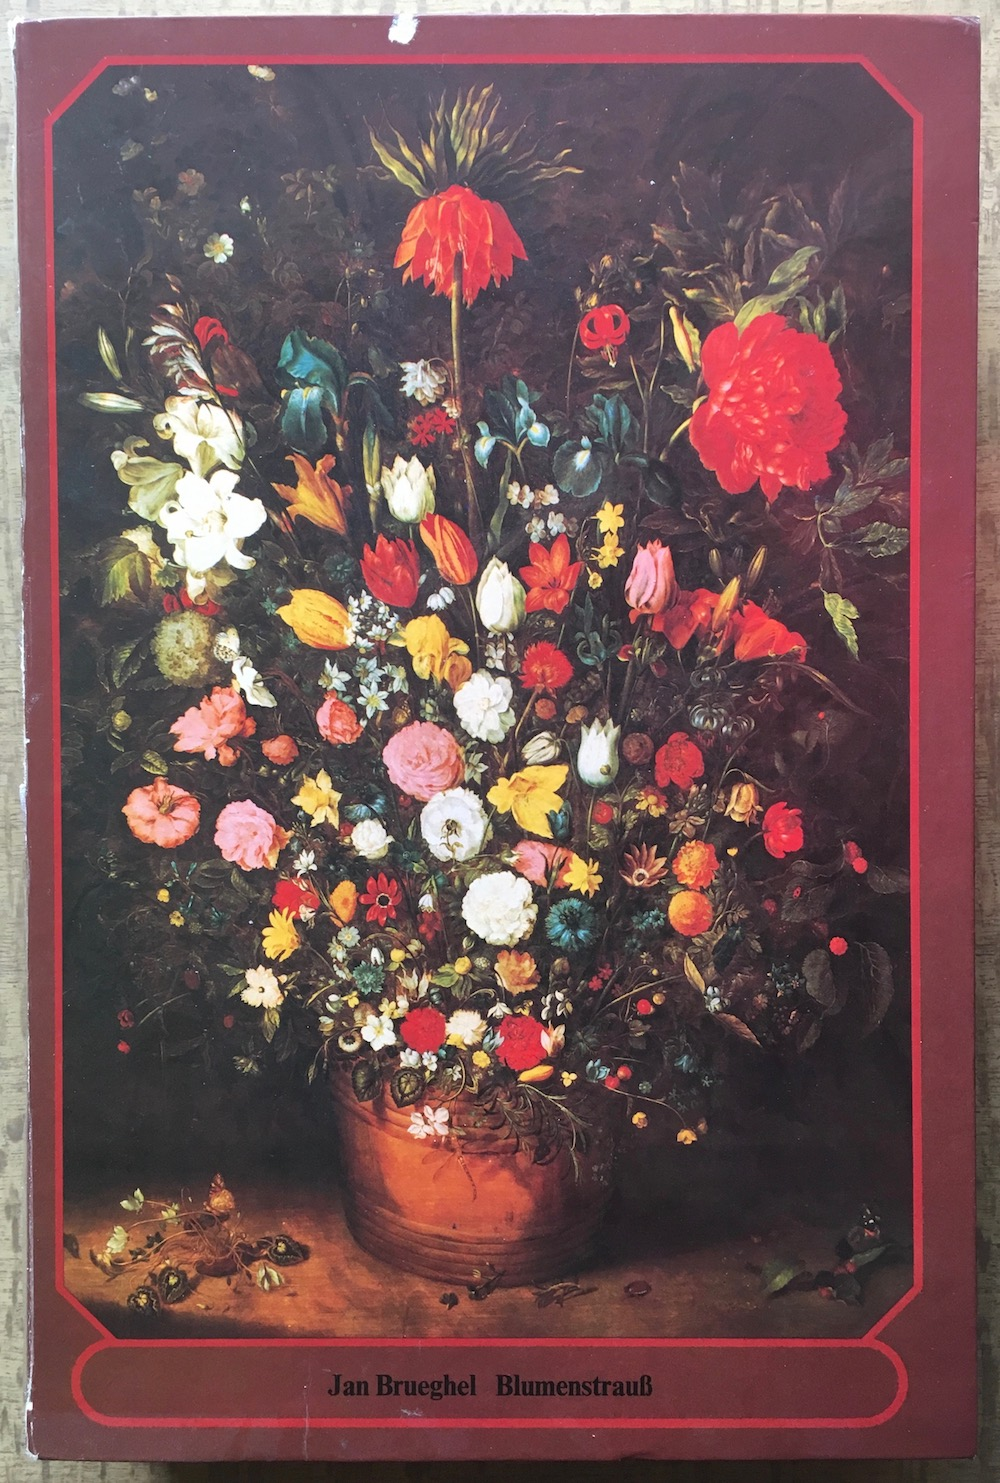 Image of the 1500, F.X. Schmid, Bouquet, Jan Brueghel the Elder, Picture of the Box